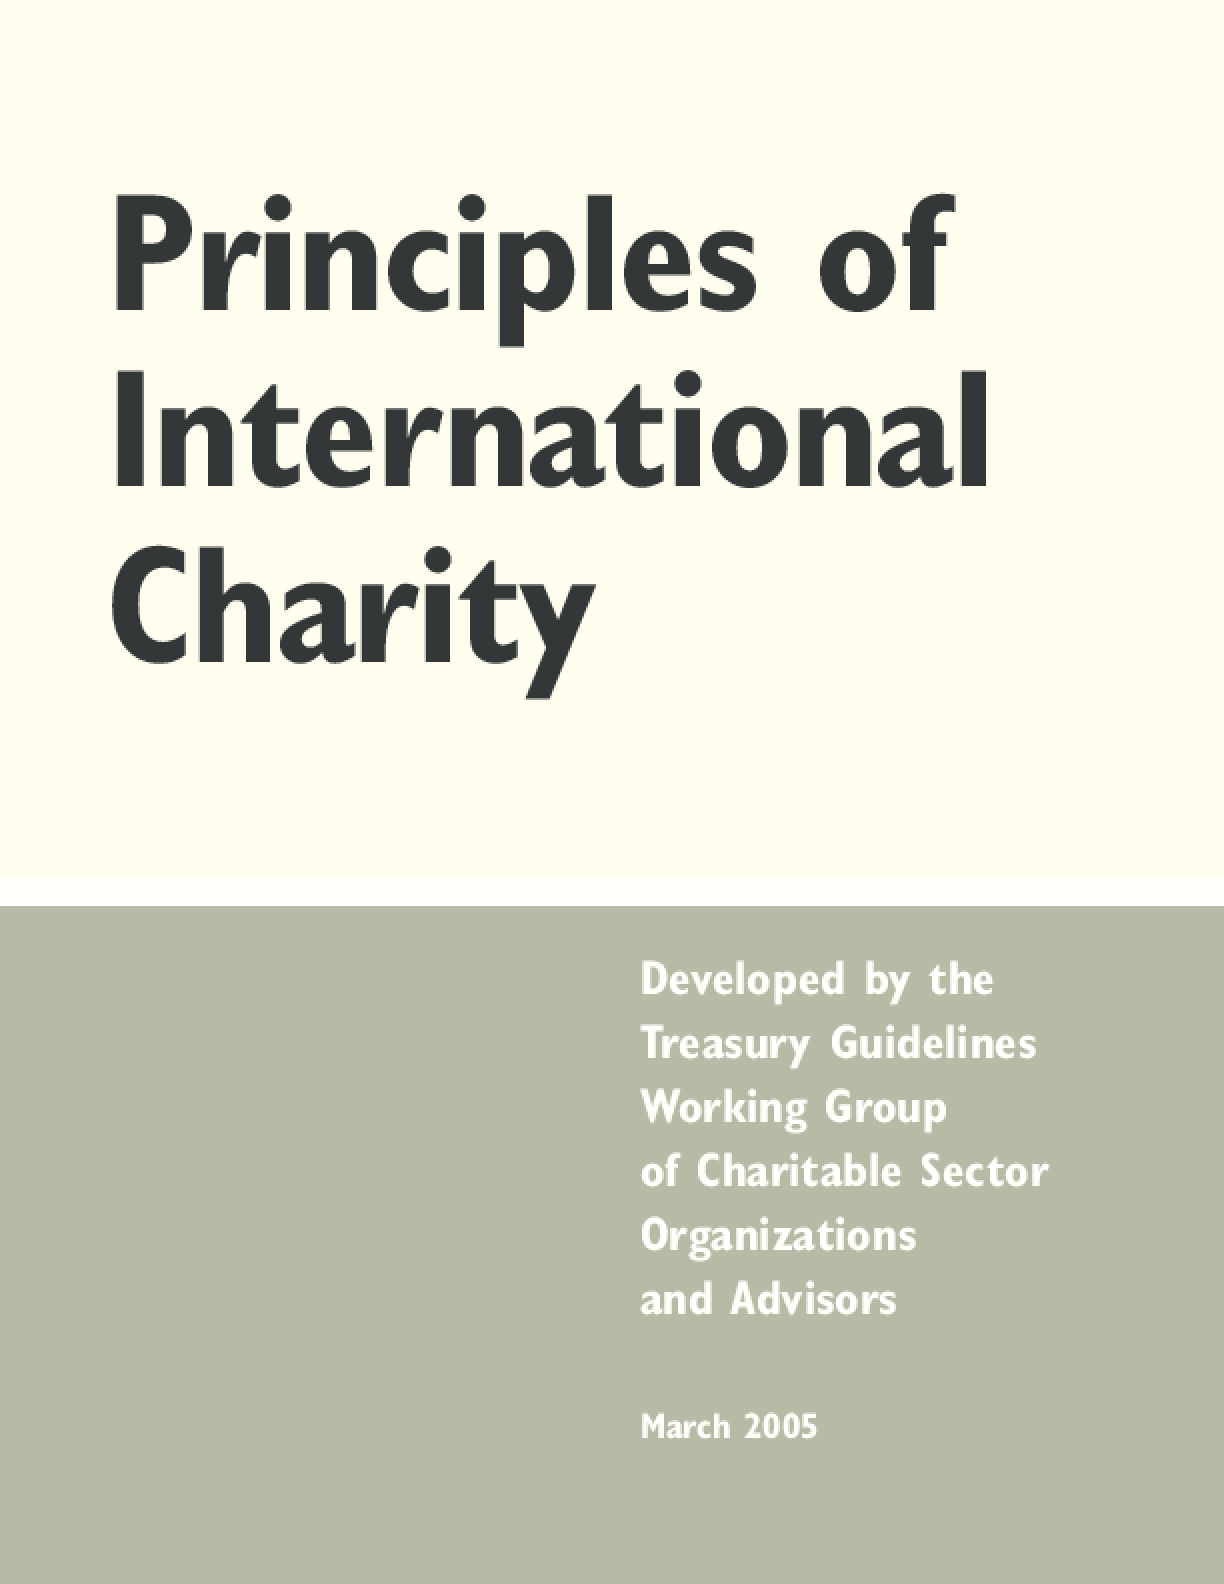 Principles of International Charity: Developed by the Treasury Guidelines Working Group of Charitable Sector Organizations and Advisors